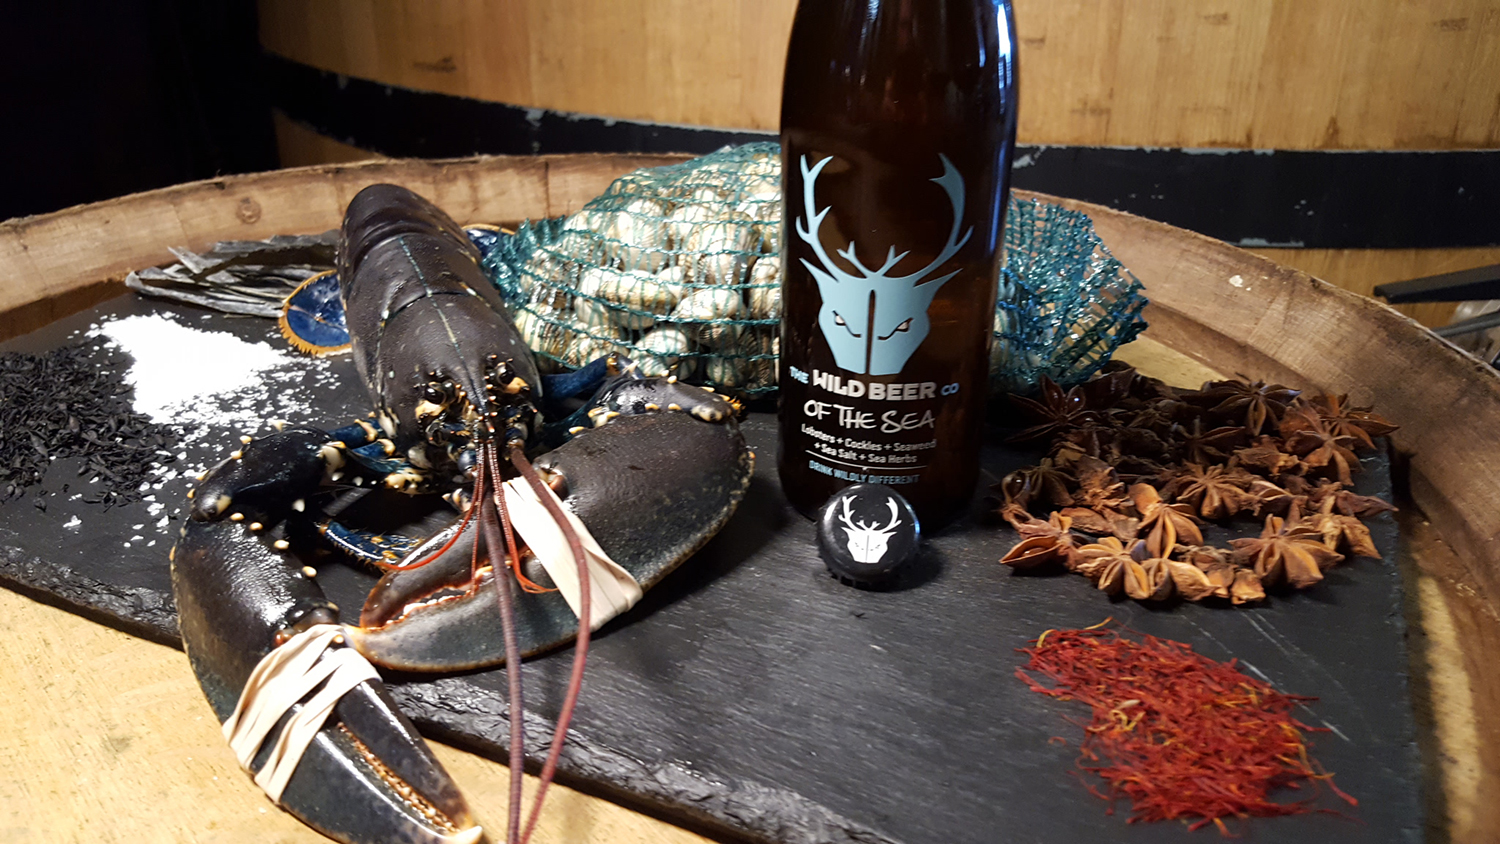 This Beer Has 30 Lobsters in It